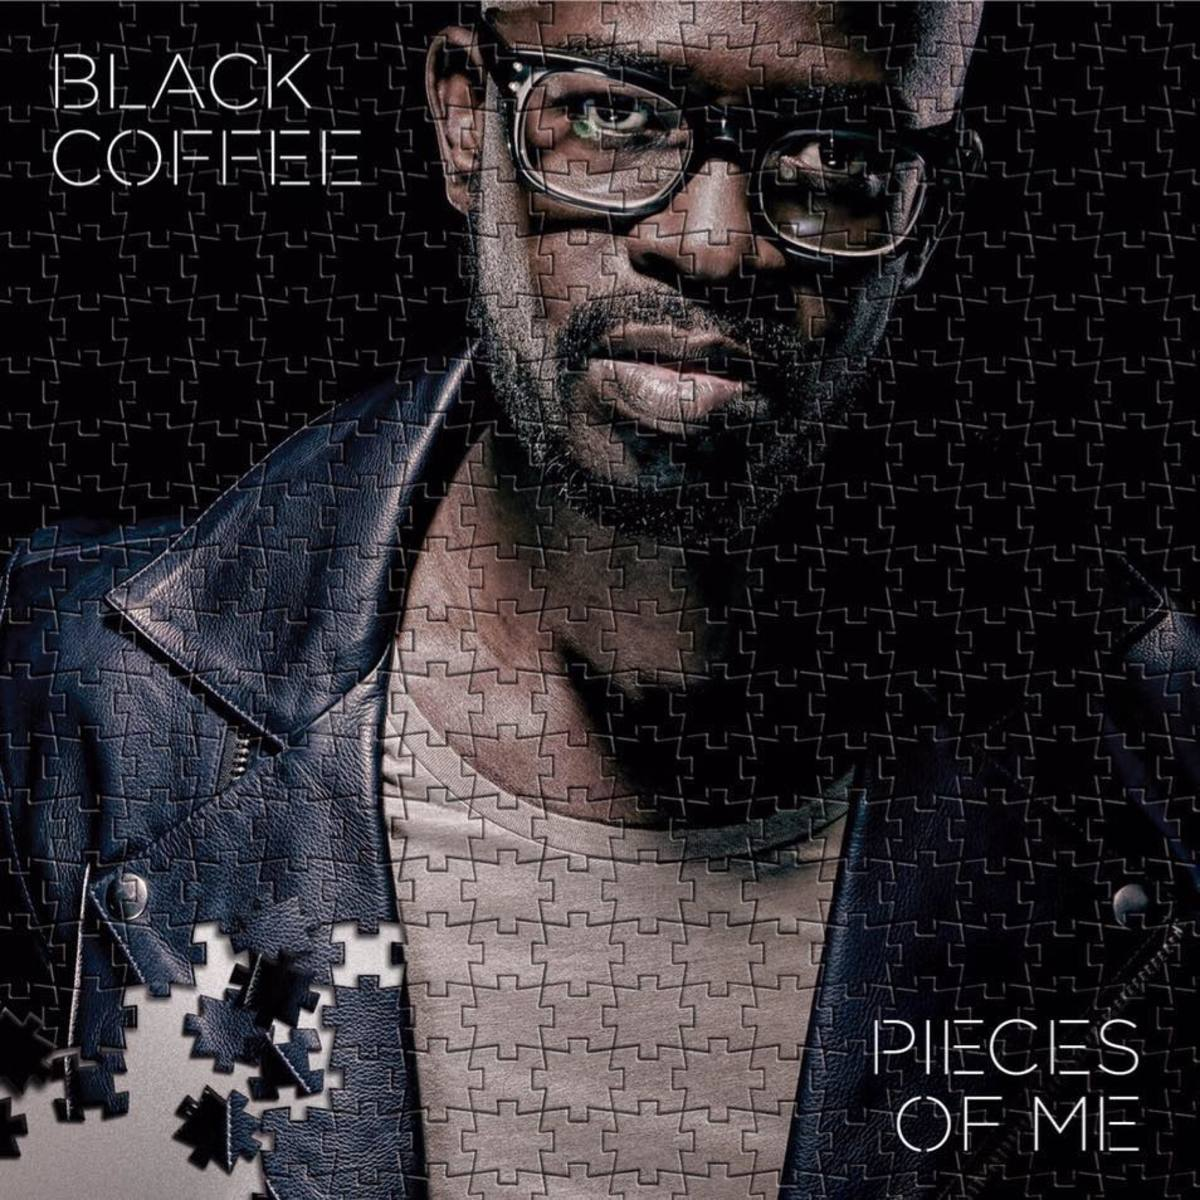 BlackCoffeePOM.jpg